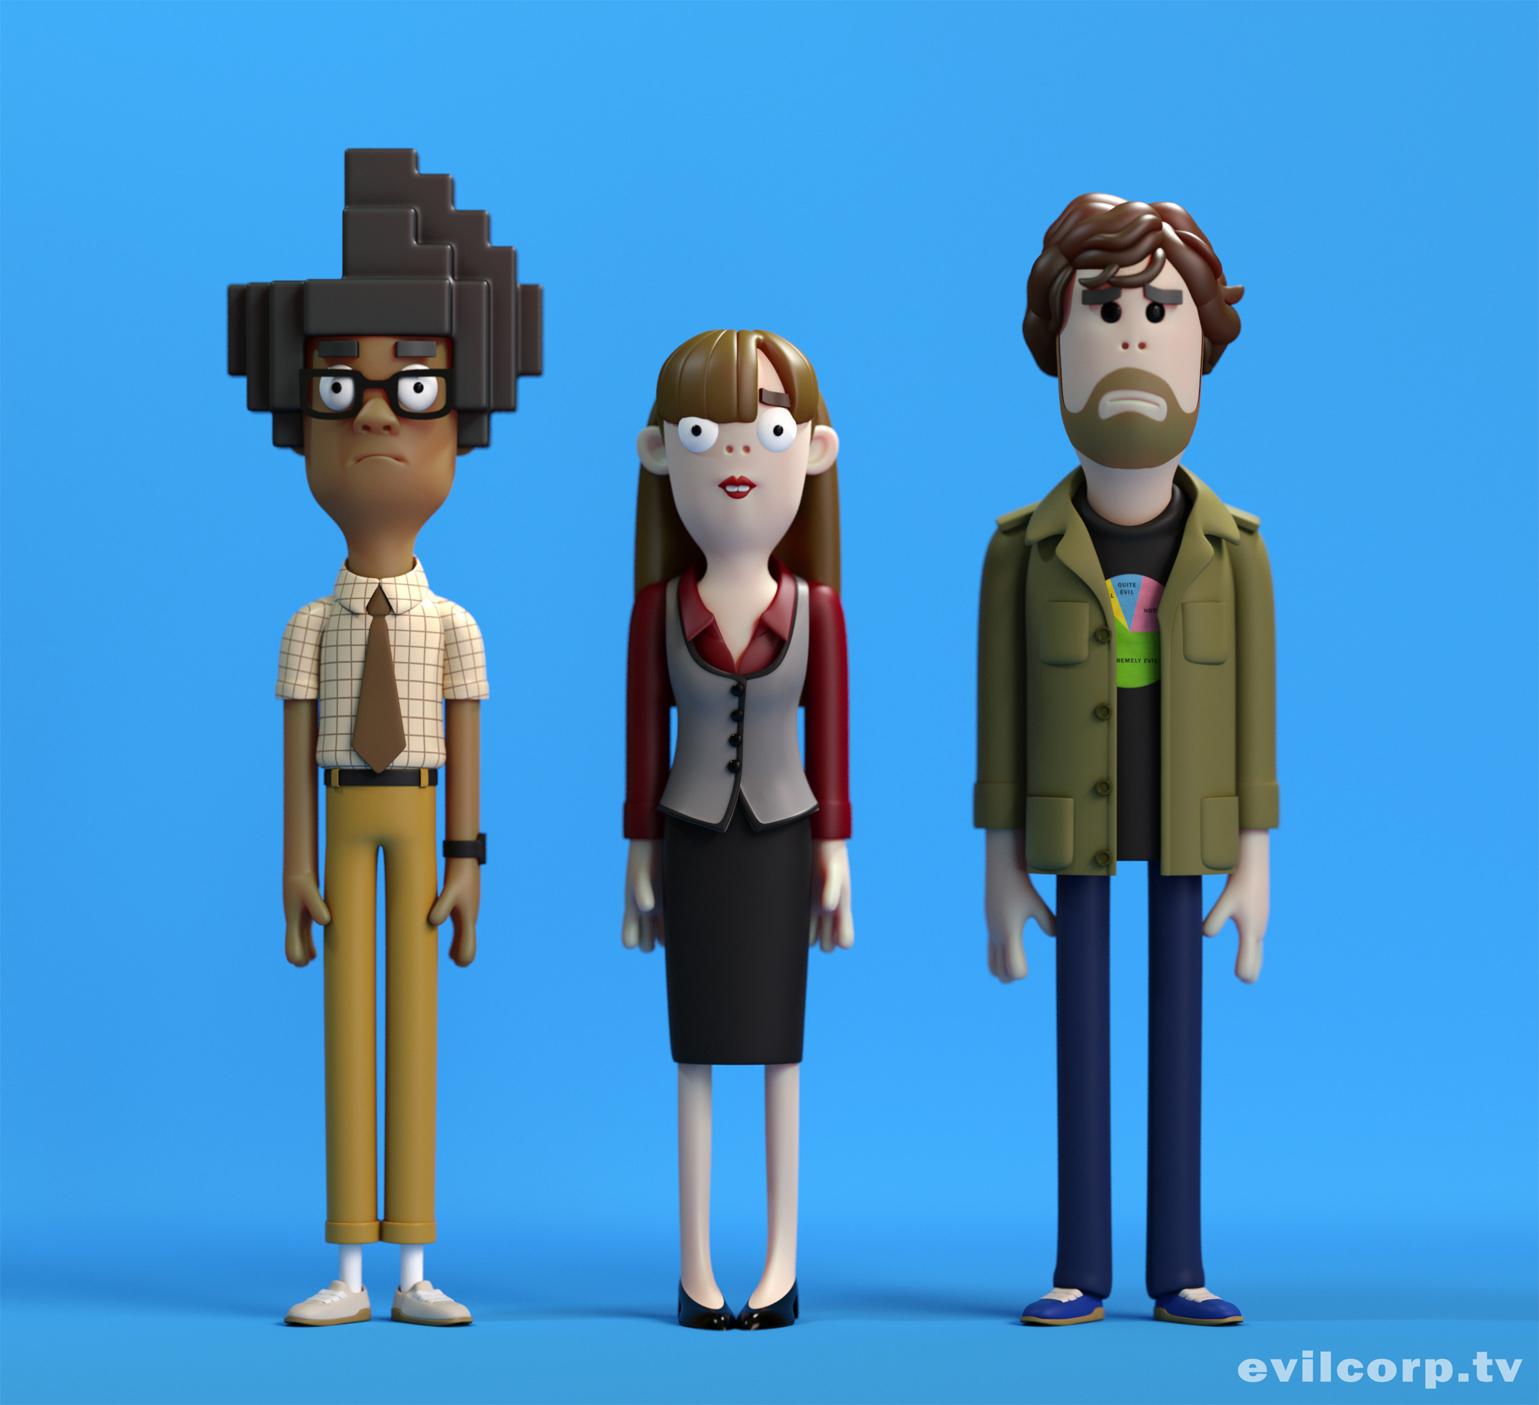 ITcrowd_smaller1